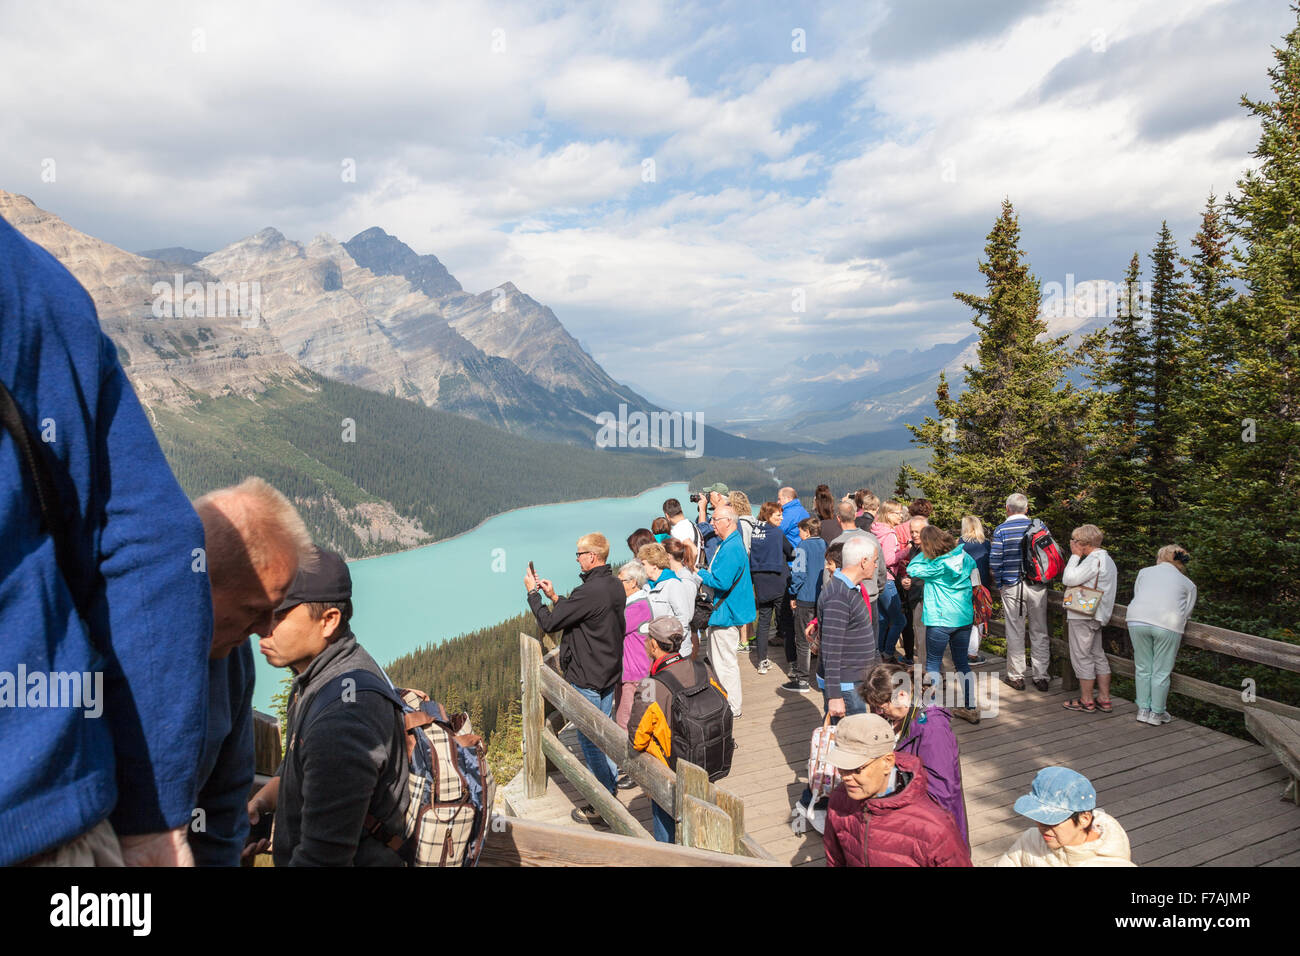 tourists-at-peyto-lake-a-glacier-fed-lak